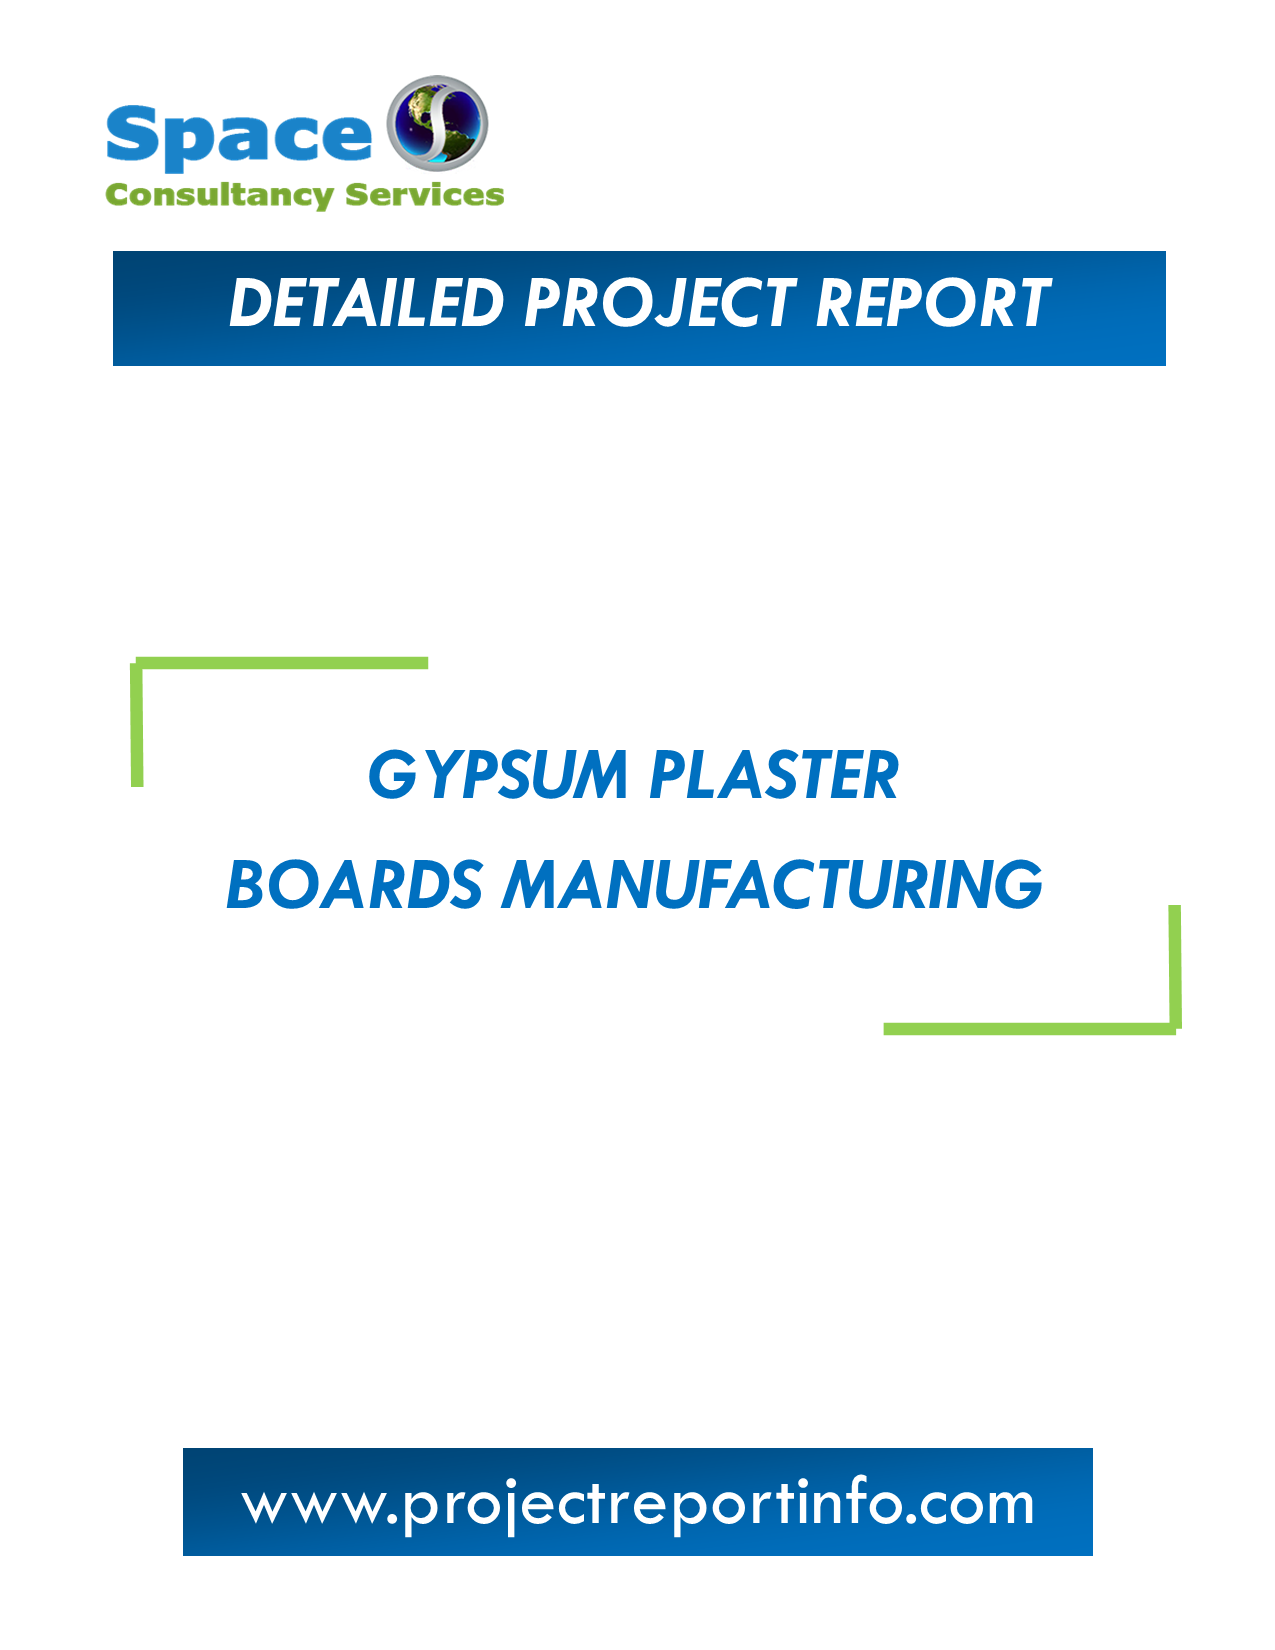 Project Report on Gypsum Plaster Boards Manufacturing